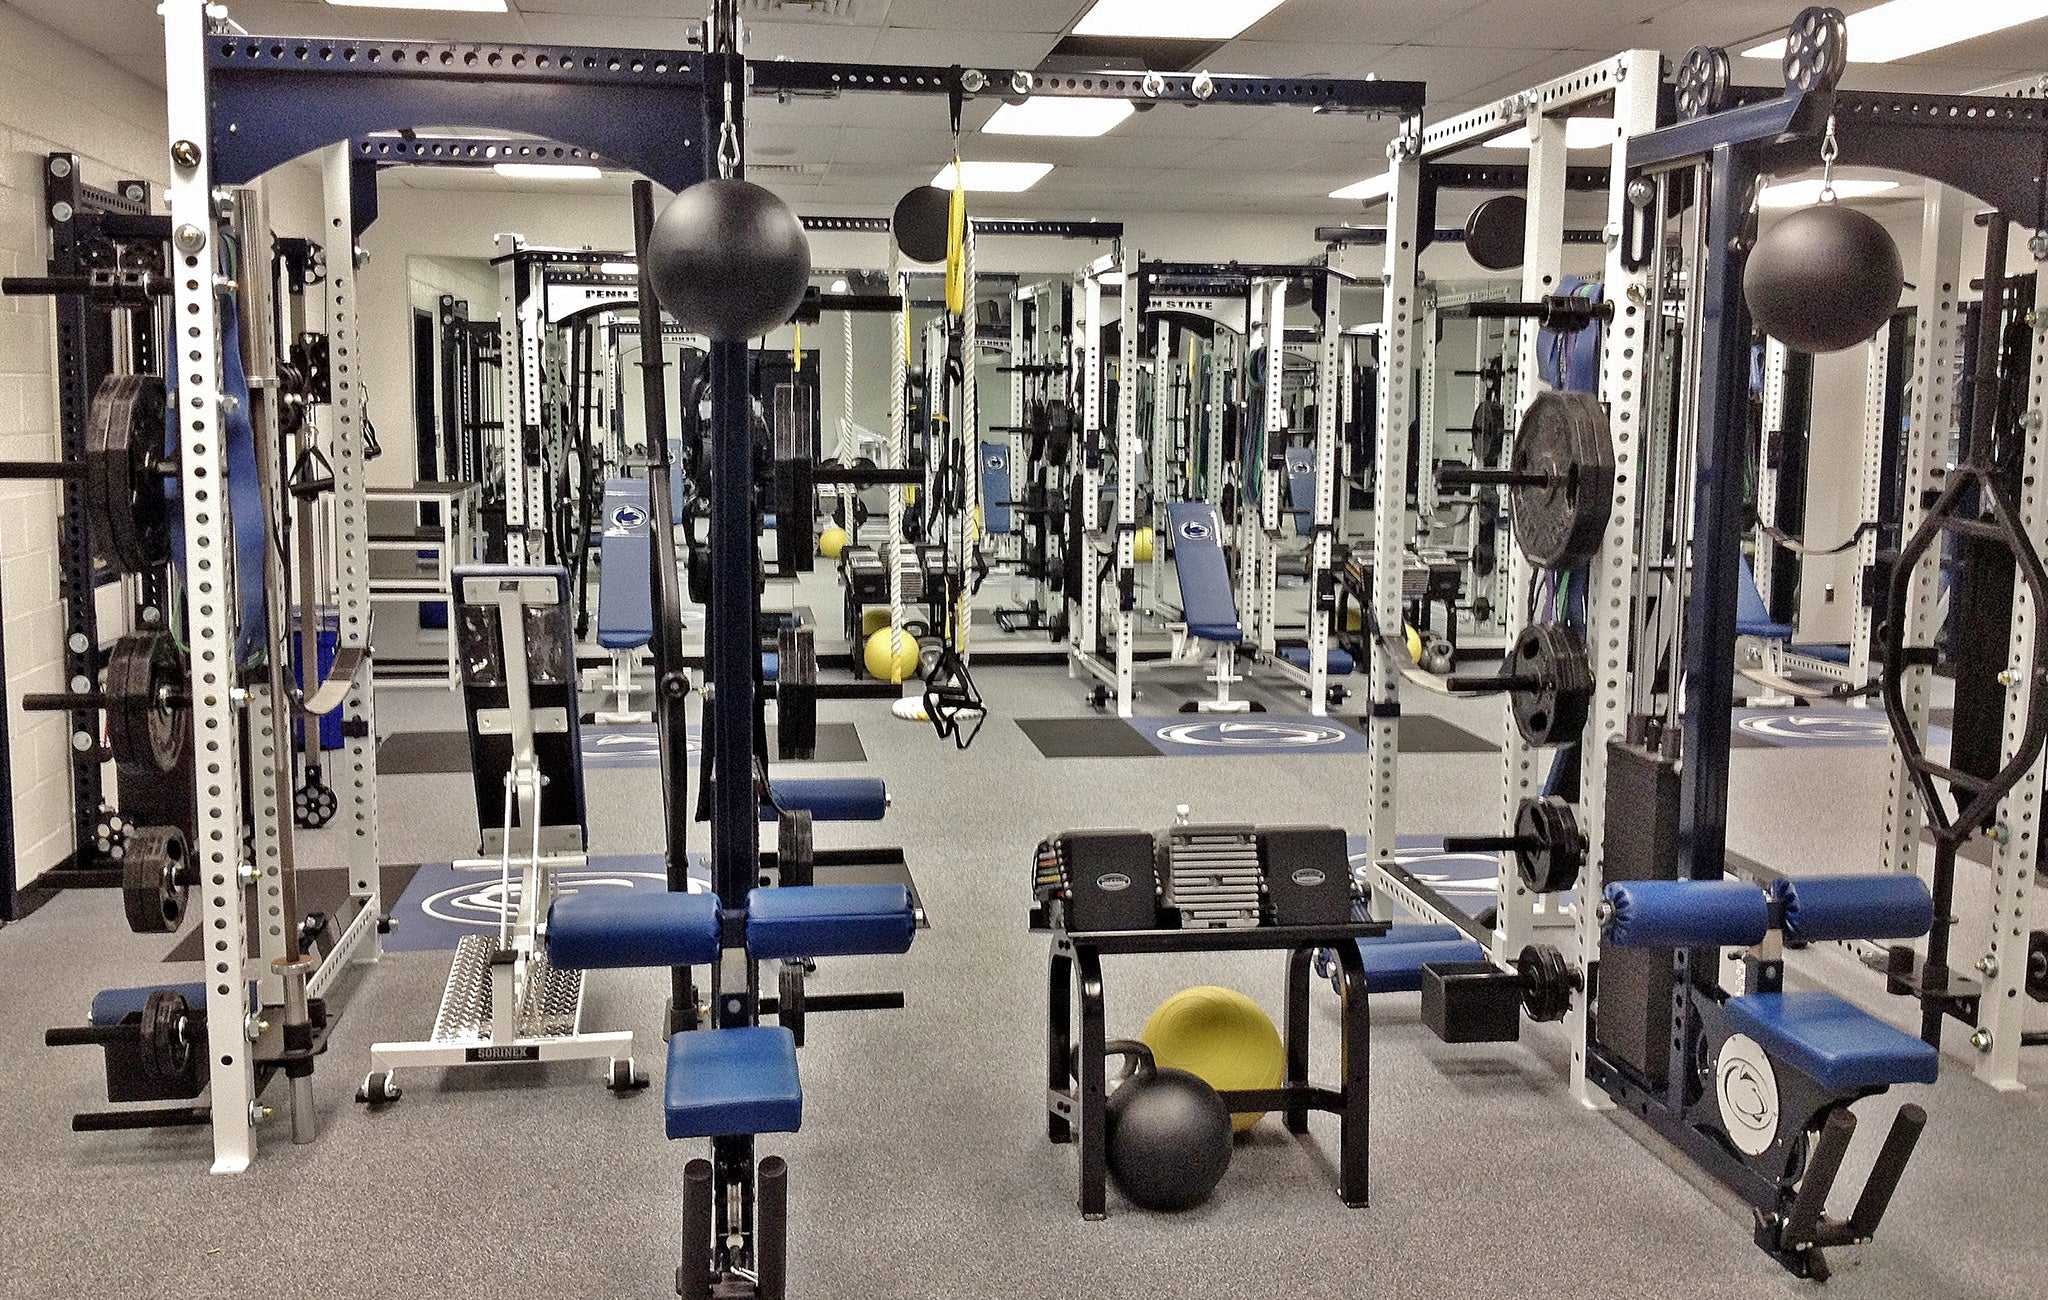 Penn State University Weight Room